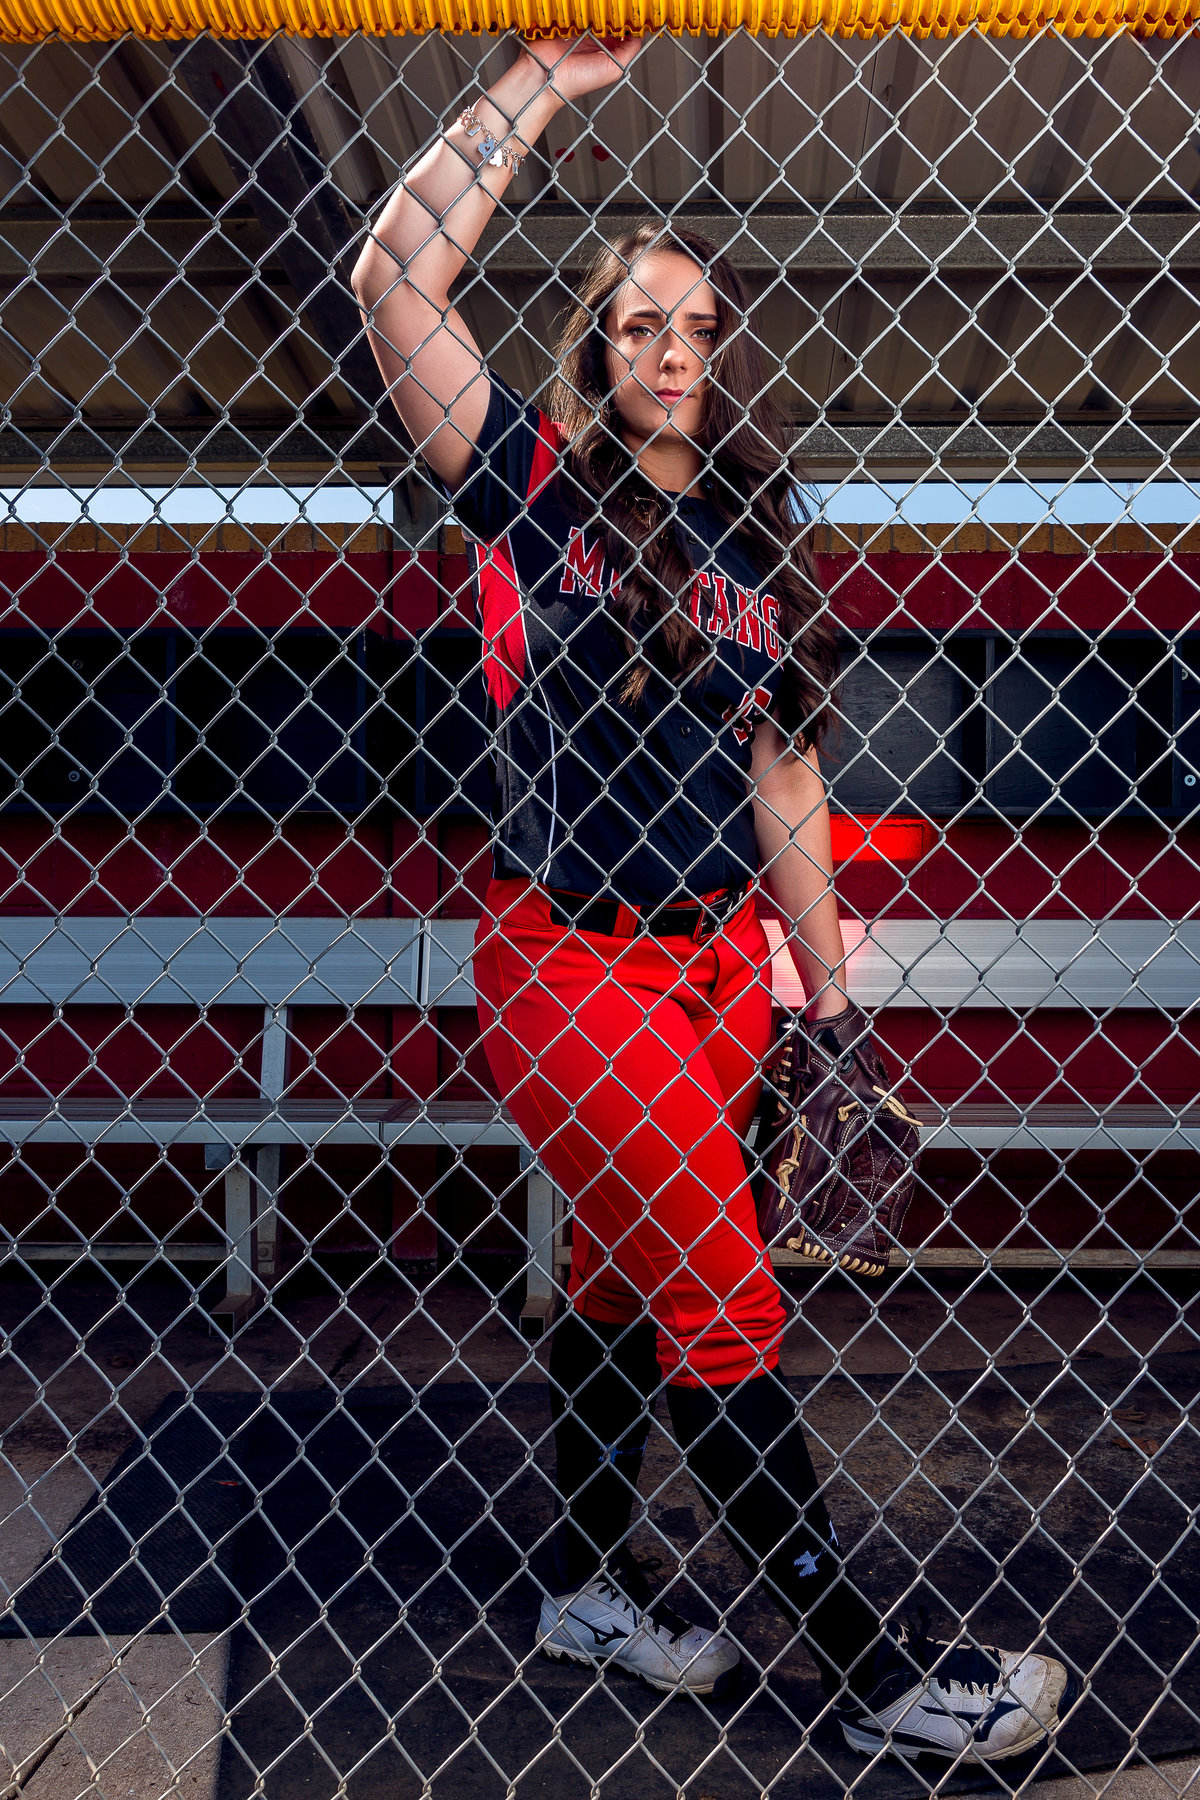 highschool-senior-softball-9